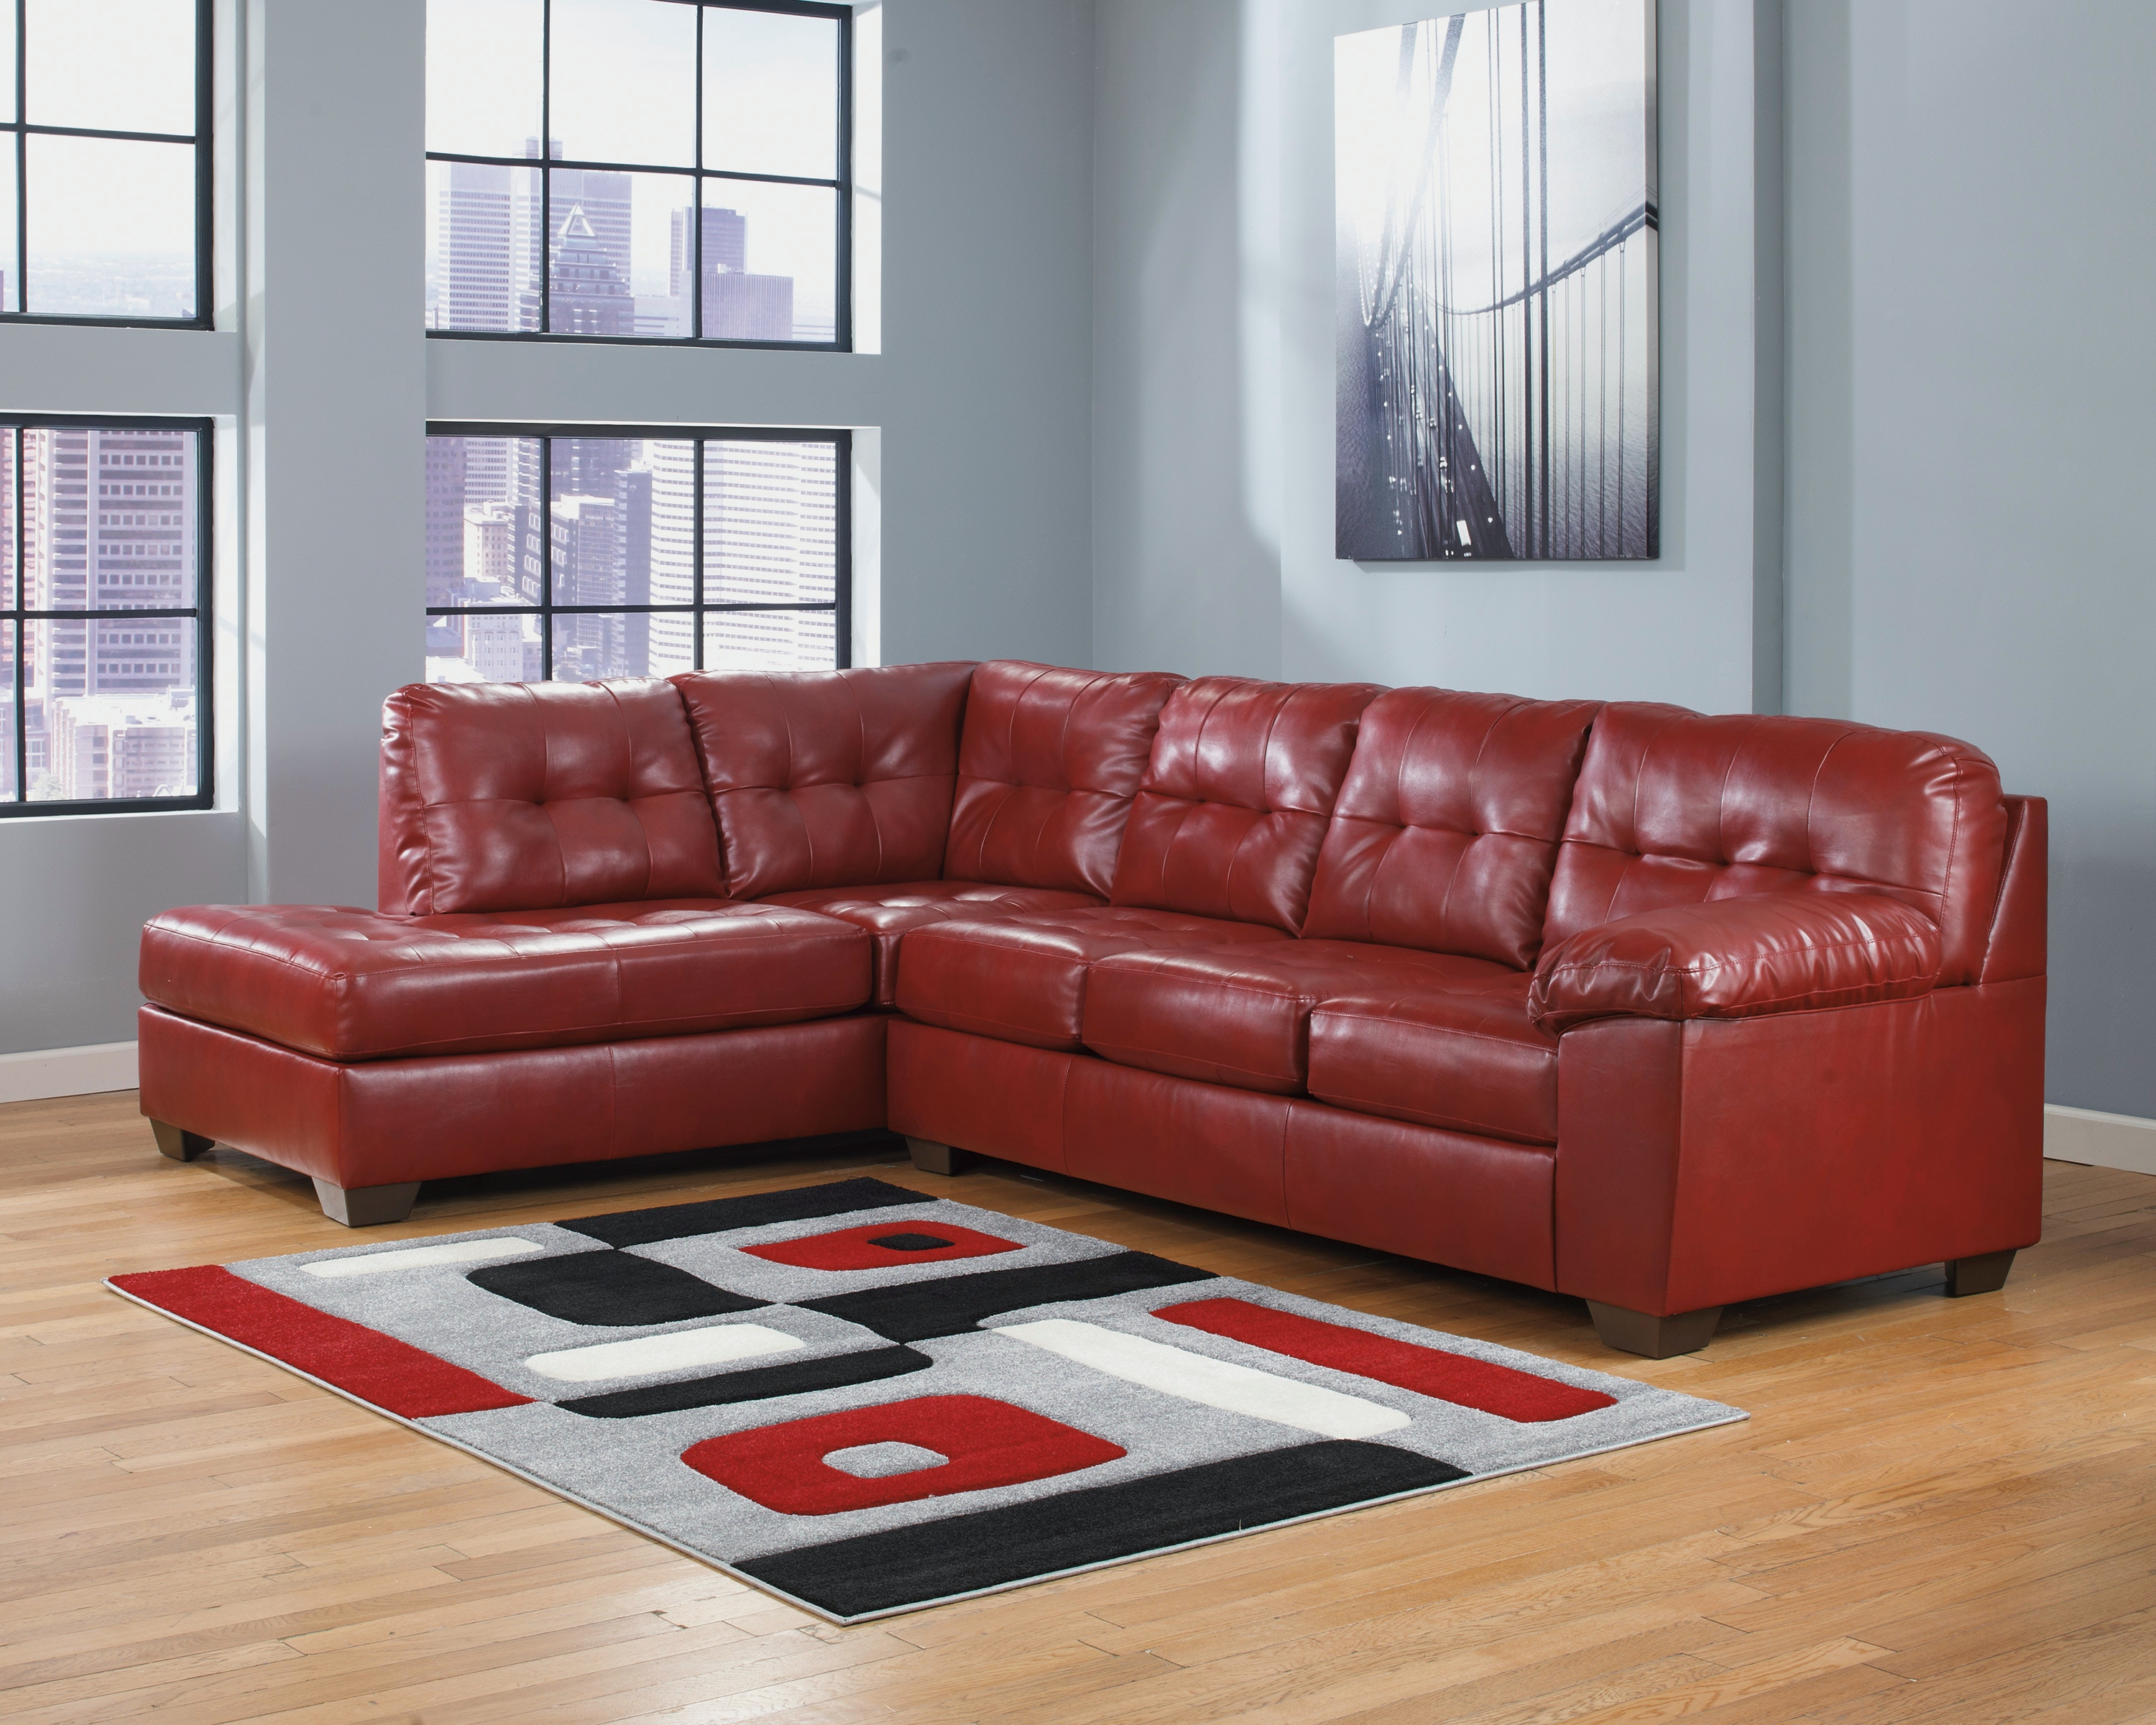 Beau Ashley Furniture Alliston DuraBlend® Sectional 20100S1